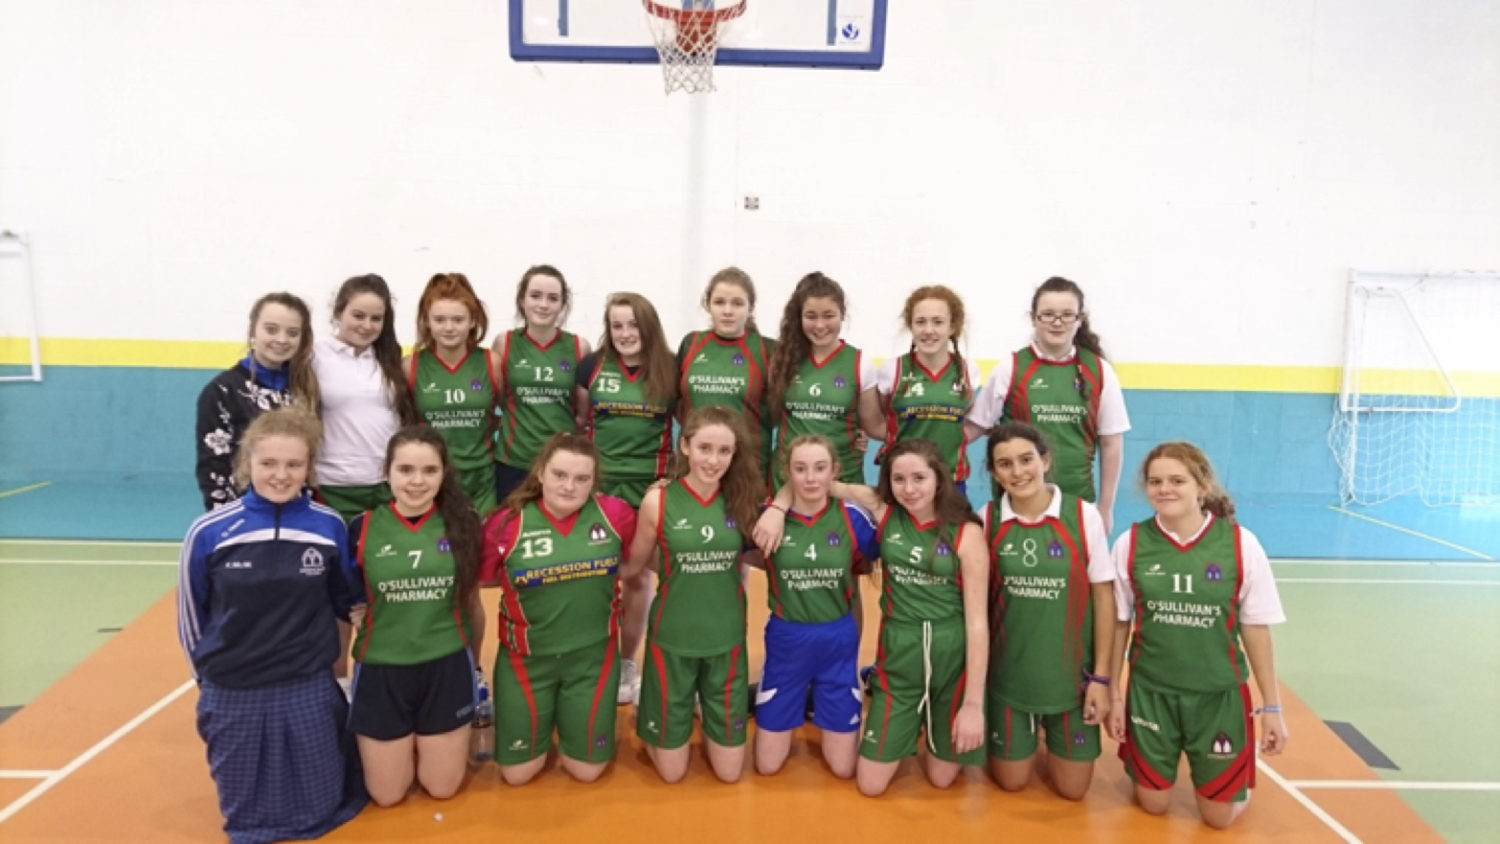 May 2017: Desmond College 2016/2017 Second Year Girls Basketball Team